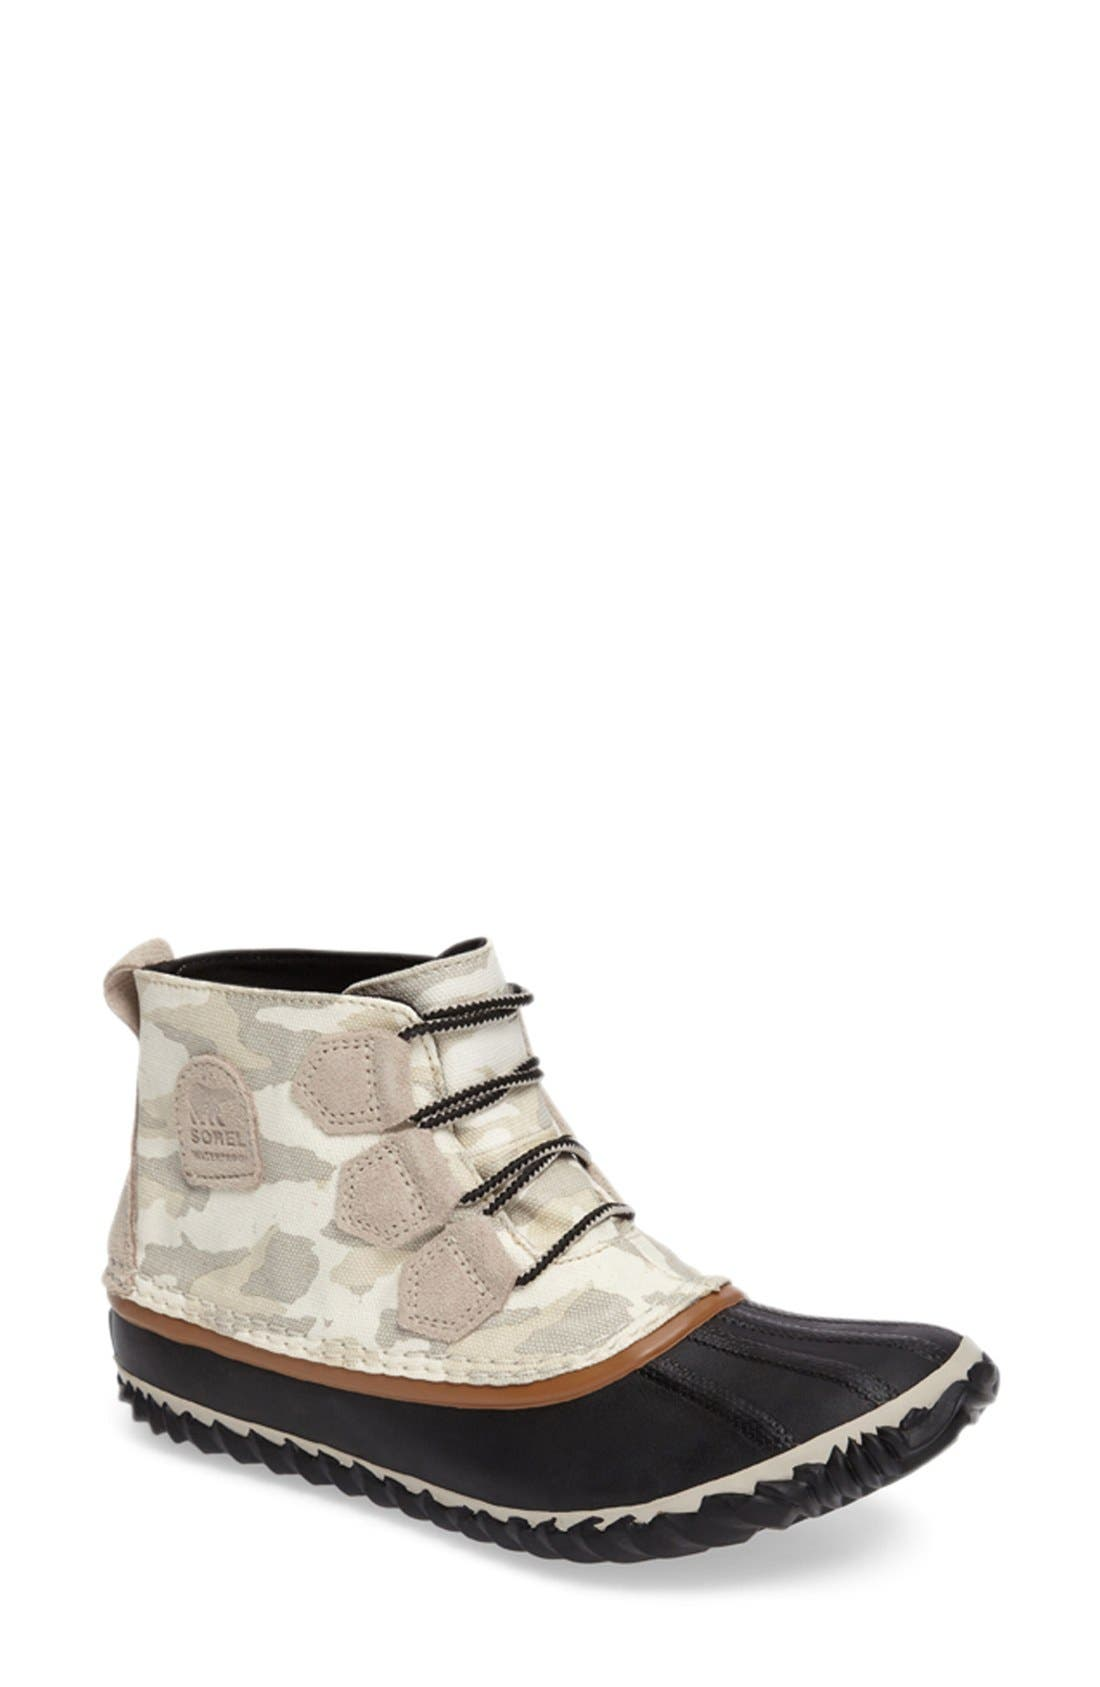 SOREL Out 'n' About Waterproof Duck Boot (Women)